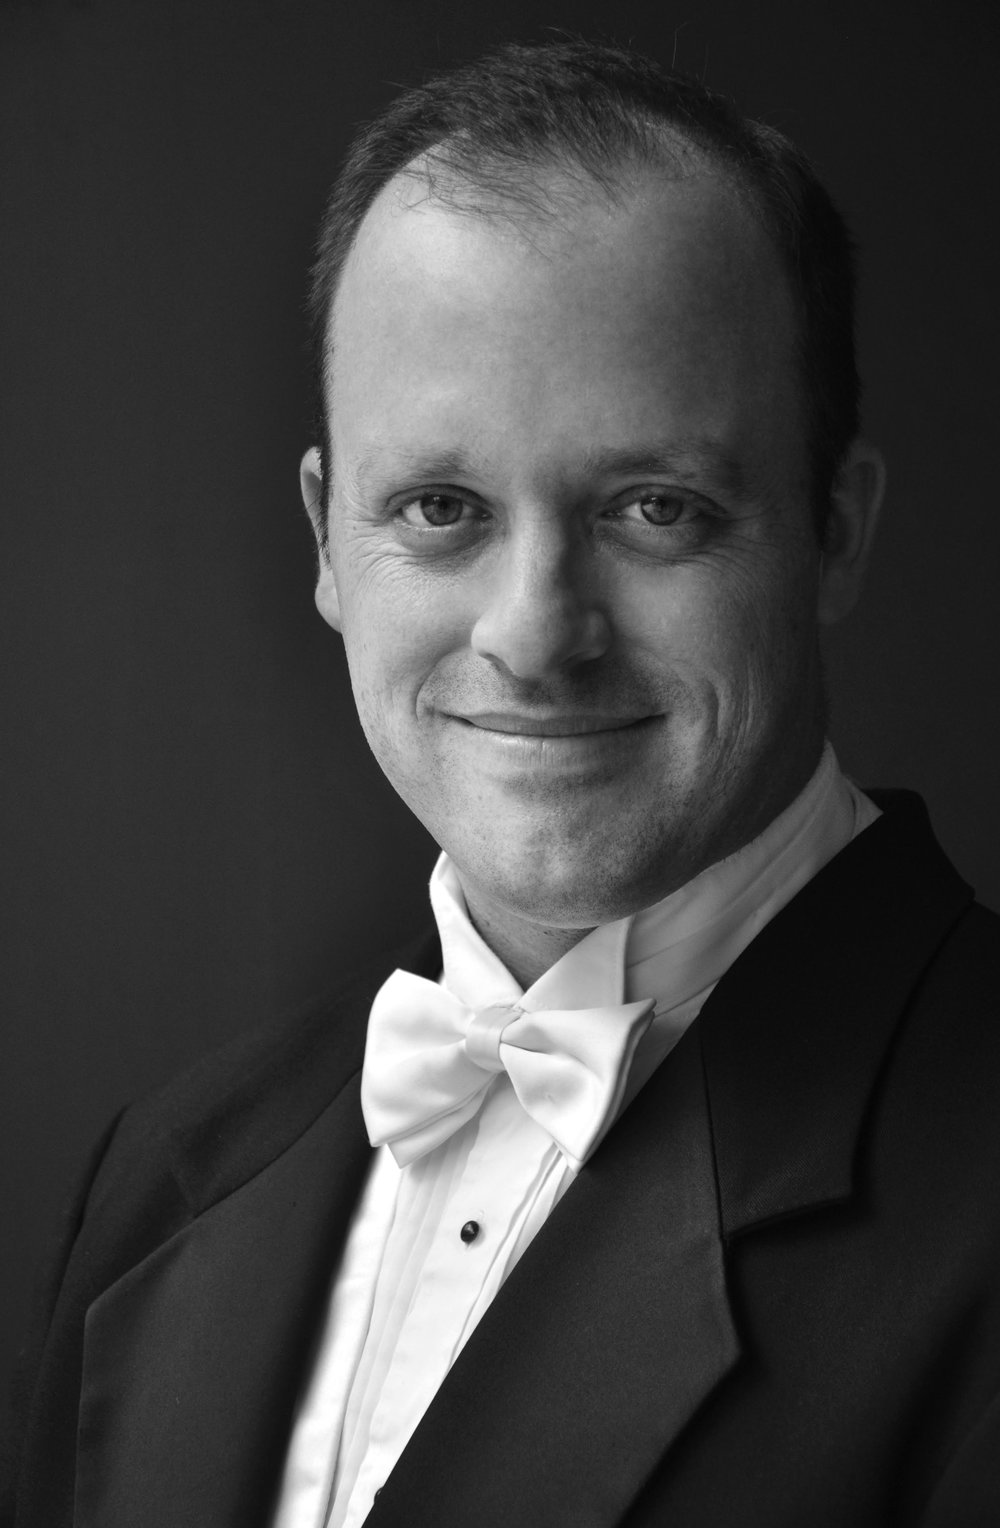 Andrew Crane, President Elect - Andrew Crane was named Associate Professor of Choral Conducting and conductor of the Brigham Young University Singers in 2015. Previous to this appointment, he served for four years as Director of Choral Activities at East Carolina University, and six years in the same position at California State University, San Bernardino. He is also the former choral director at Provo High School.Choirs under his direction have appeared by invitation at multiple conferences of the American Choral Directors Association and National Association for Music Education; and have won top prizes in international competitions. In 2015, he led the East Carolina University Chamber Singers to a first place finish in the 13th Maribor (Slovenia) International Choral Competition Gallus, the only American choir to win in the history of the contest.Since coming to BYU, he has conducted the University Singers in joint concerts with the King's Singers, and also prepared the choir for performances of Handel's Messiah with conductor Nigel Short and the British vocal ensemble Tenebrae. In February 2017, BYU Singers will appear in an invited performance at the state convention of the Utah Music Educators Association. Additionally, Dr. Crane enjoys a career as a professional solo and ensemble tenor, having appeared with such groups as the Los Angeles Bach Festival, Santa Fe Desert Chorale, Yale Choral Artists, Vox Humana, Spire Chamber Ensemble, Tennessee Chamber Chorus, Lansing Symphony Orchestra, North Carolina Master Chorale, Carnegie Hall Festival Chorus, and others.Dr. Crane is active as a conductor of honor choirs, clinician, guest lecturer, and accompanist. Additionally, he serves as editor of the Andrew Crane Choral Series through Walton Music; and as the College and University Repertoire and Resources chair for Utah ACDA. His degrees include the BM in Music Education and MM in Choral Conducting from Brigham Young University, and the Doctor of Musical Arts from Michigan State University.